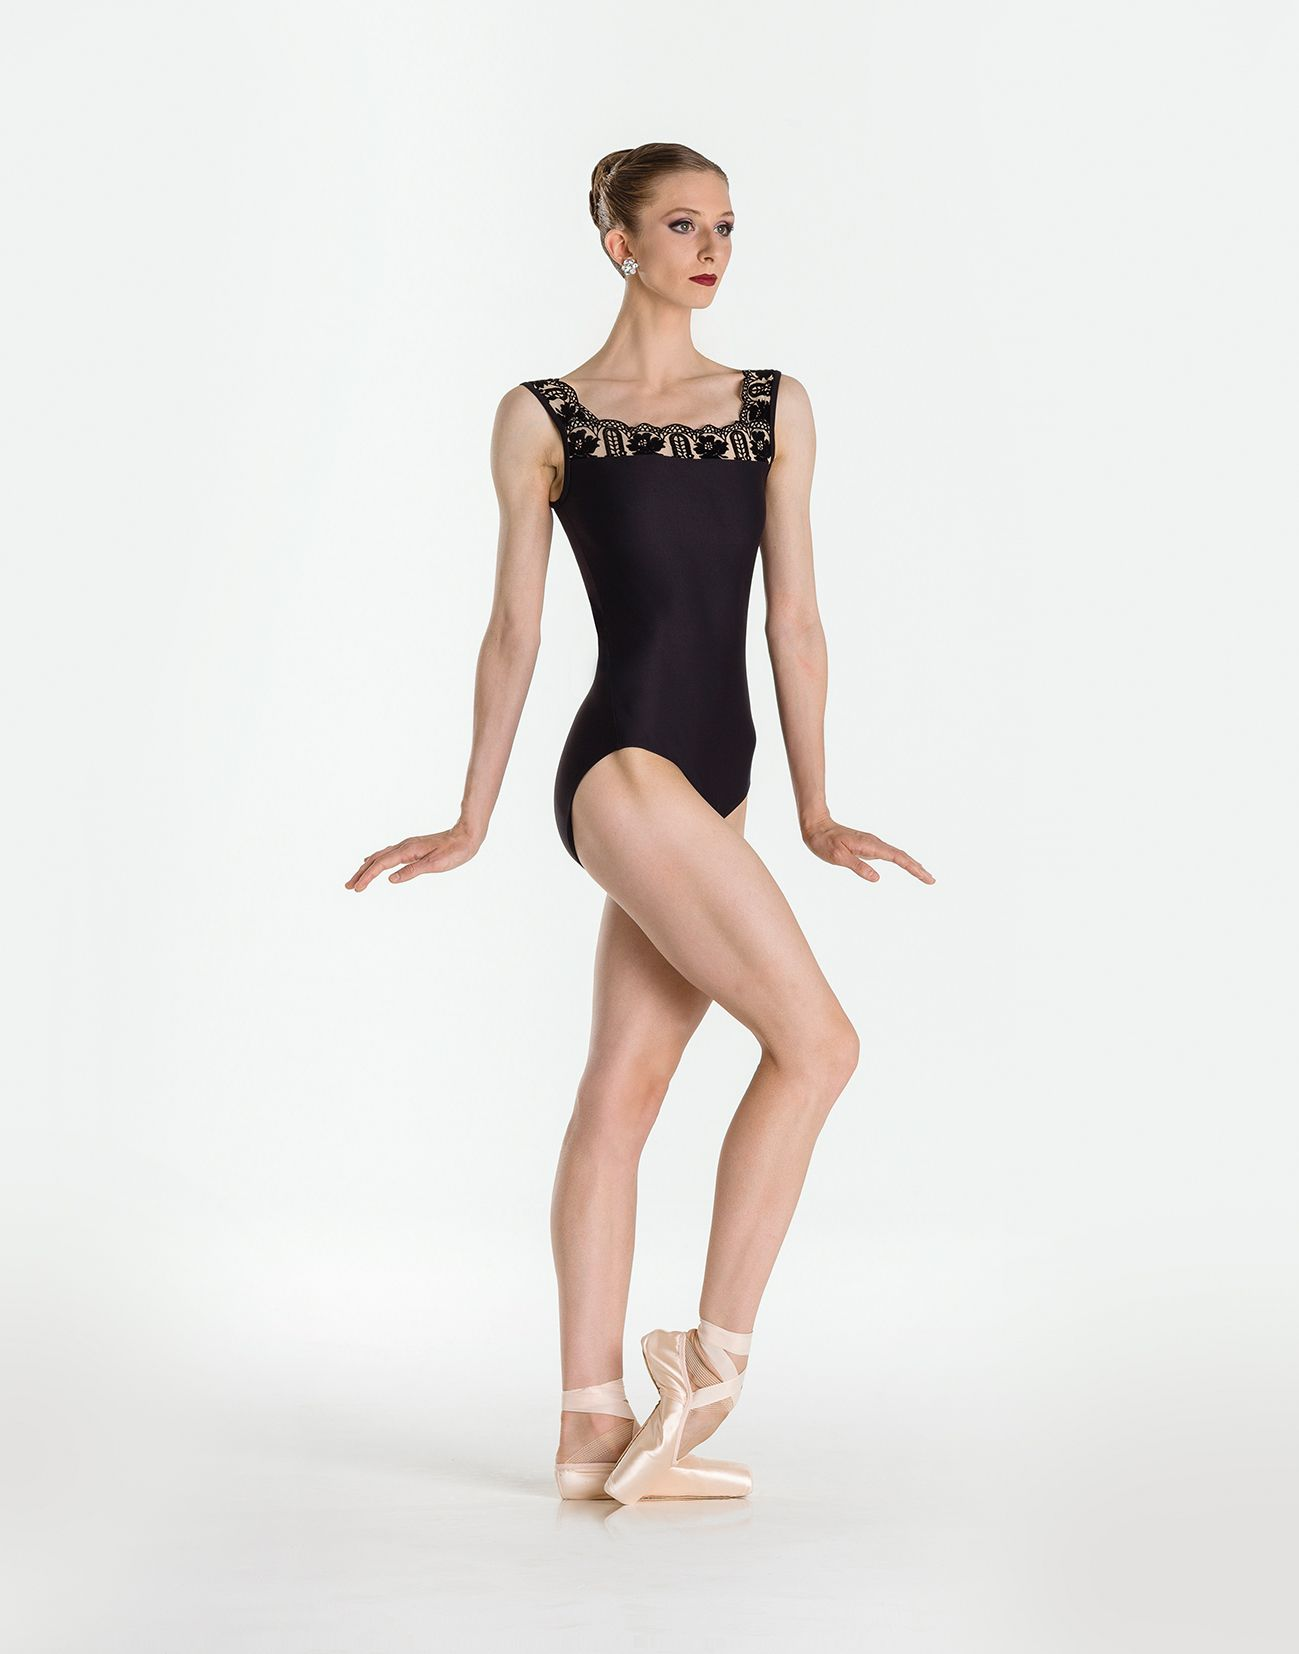 b29c98b569d6 ARLETTY - This tank style fashion leotard shows off the chic detail ...